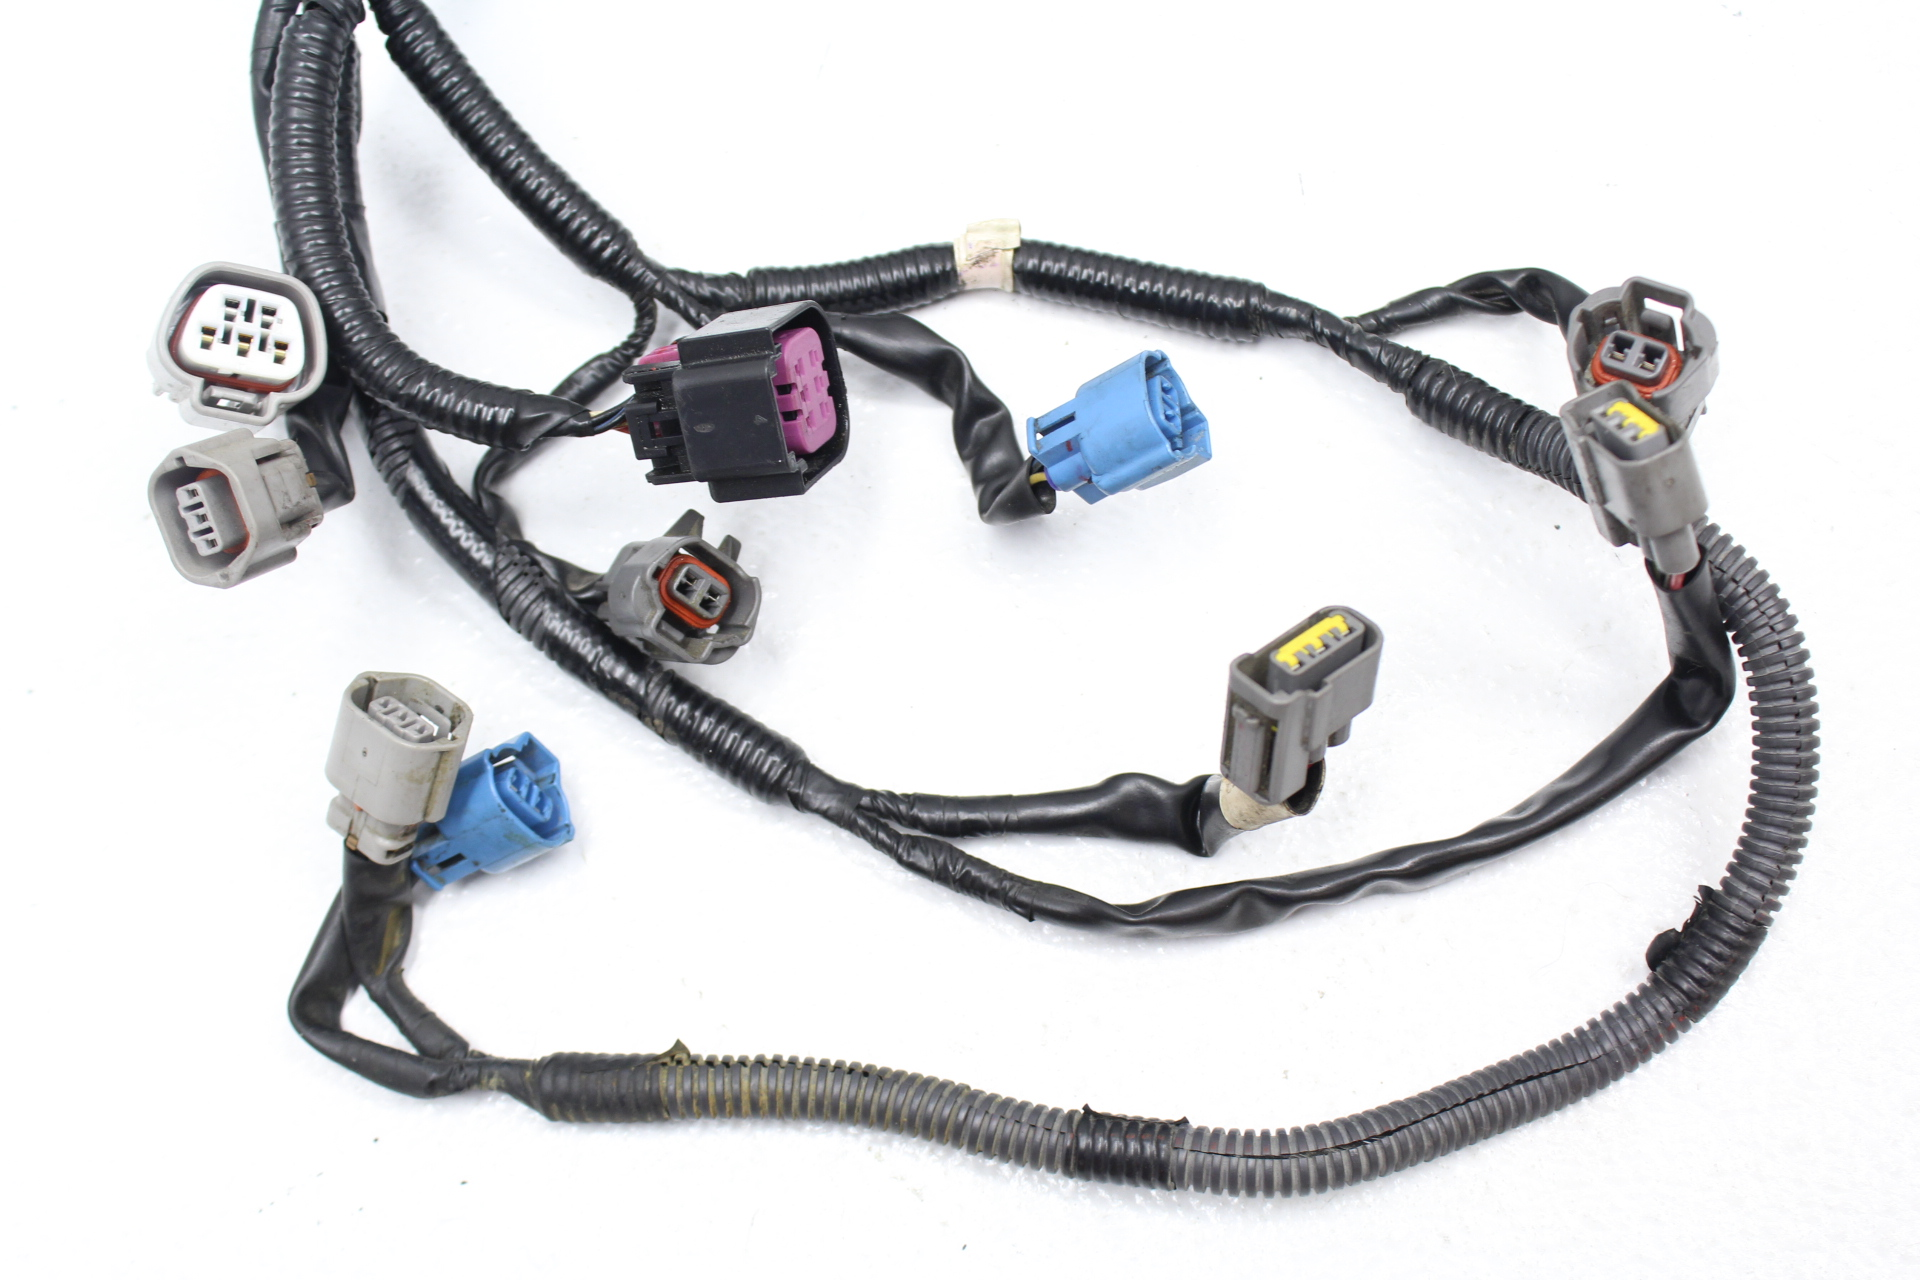 Subaru Wrx Sti Engine Motor Wire Wiring Harness